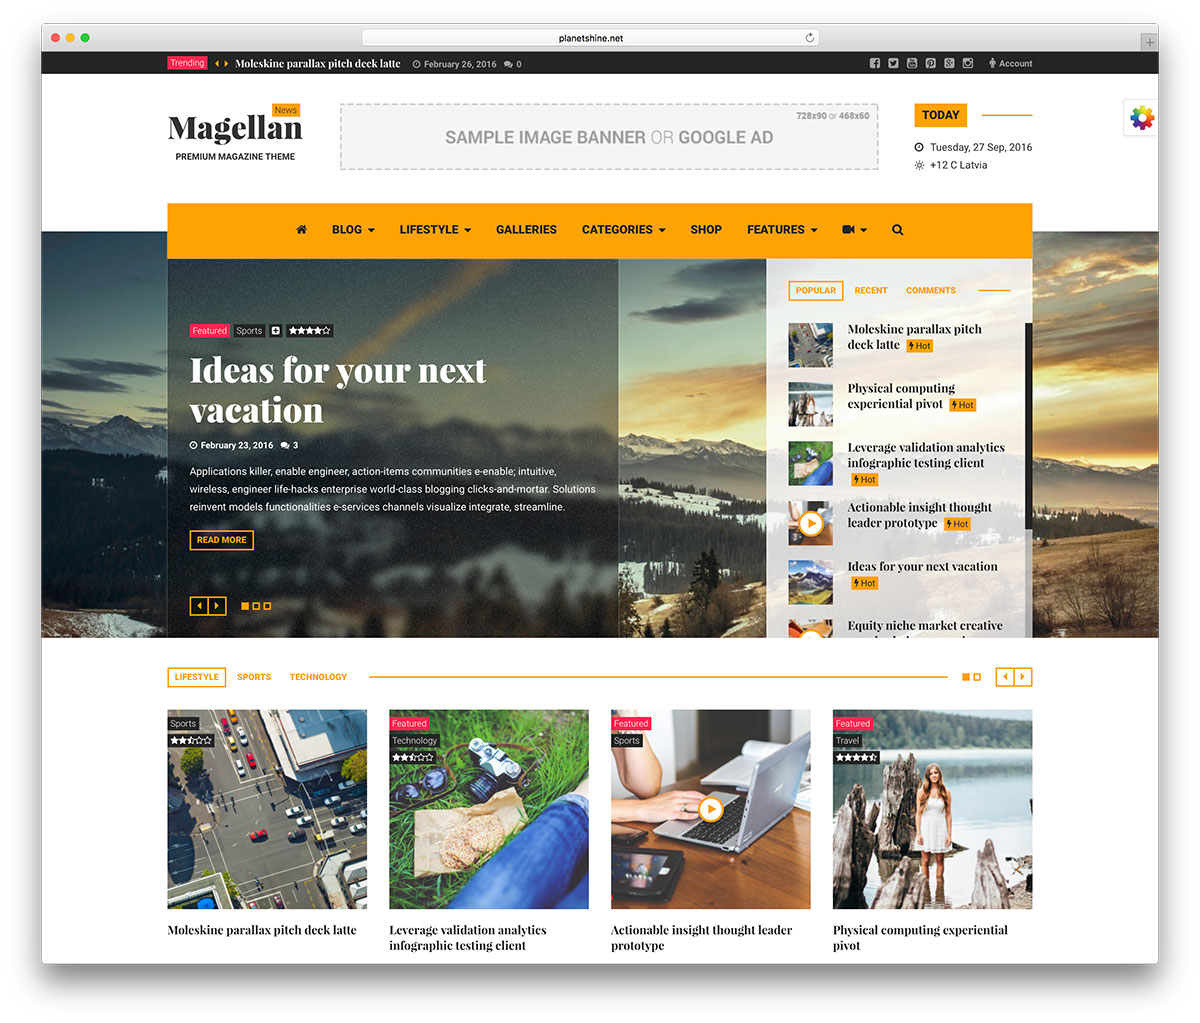 magellan-modern-magazine-wordpress-theme